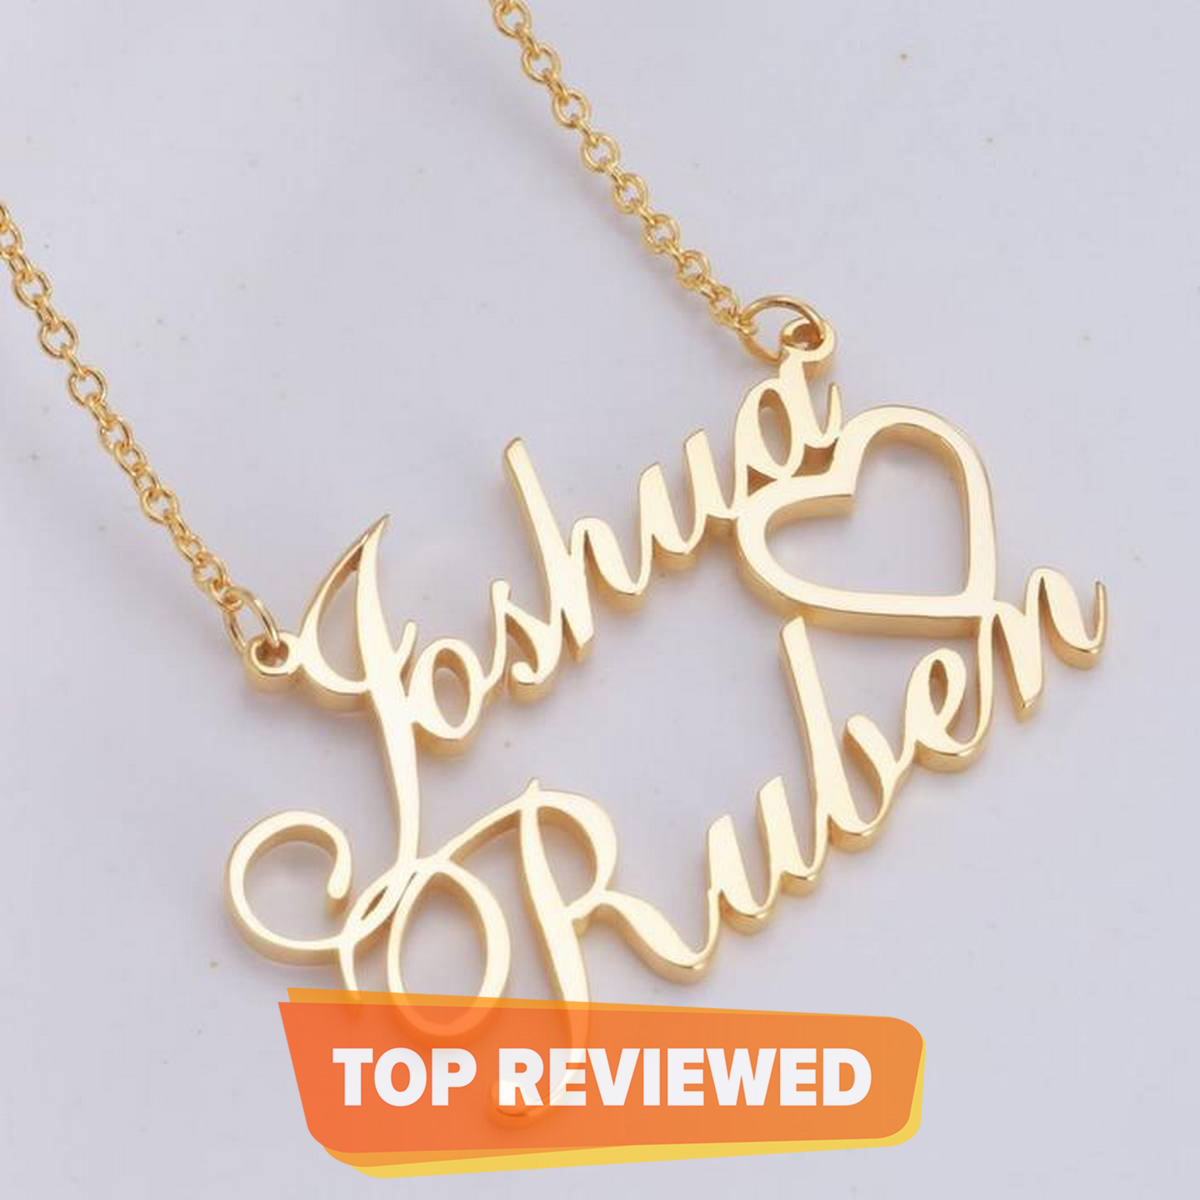 Custom Made Jewelry, Personalized Name Necklace Chain, Heart Design Best For Gift, Trendy Item